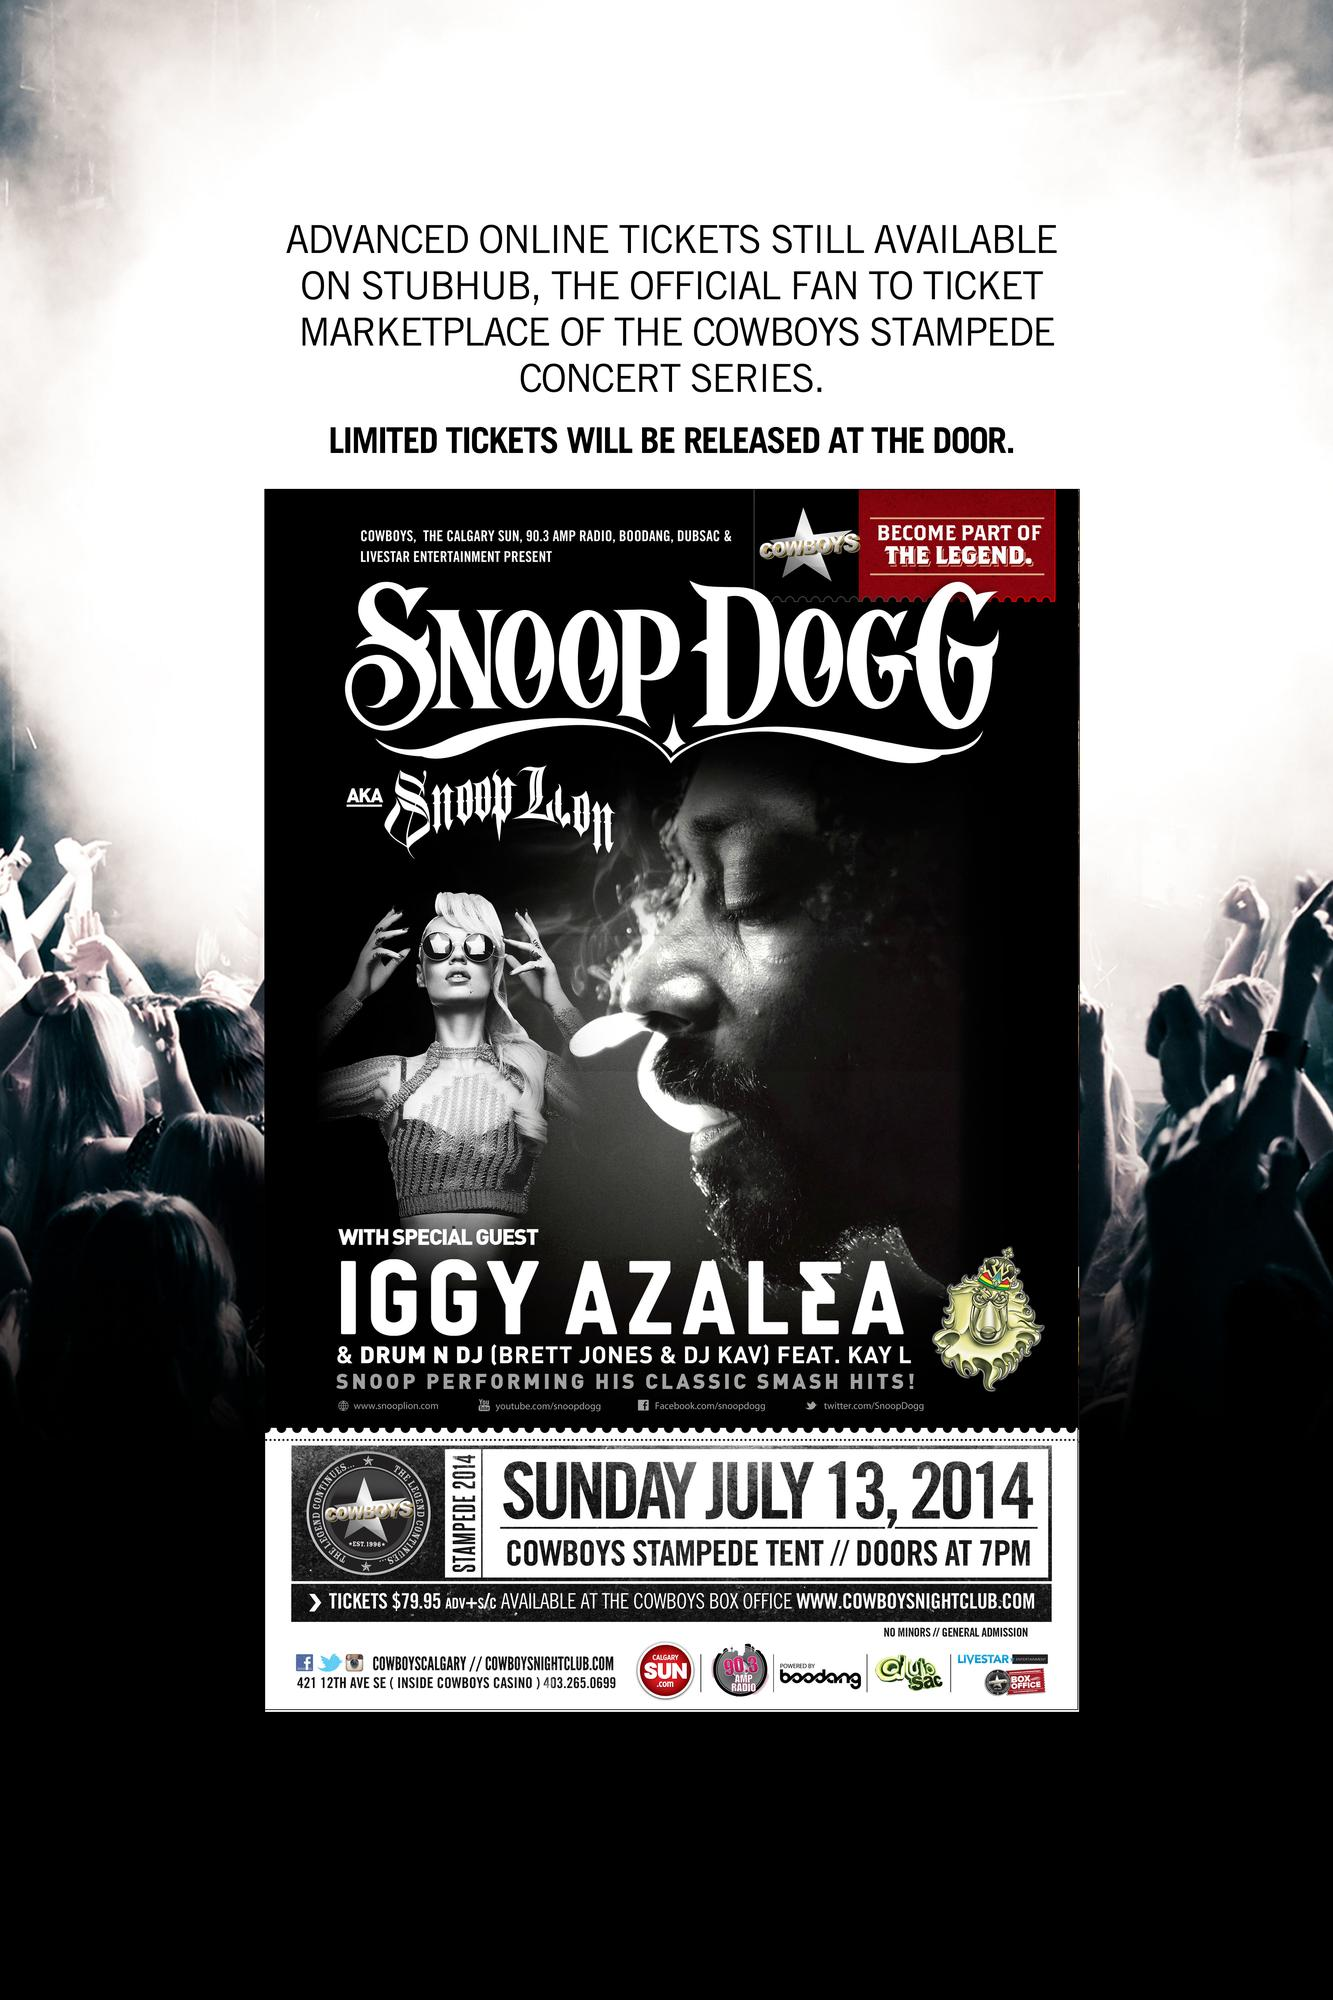 Snoop Dogg With Special Guest Iggy Azalea Cowboys Stampede Tent